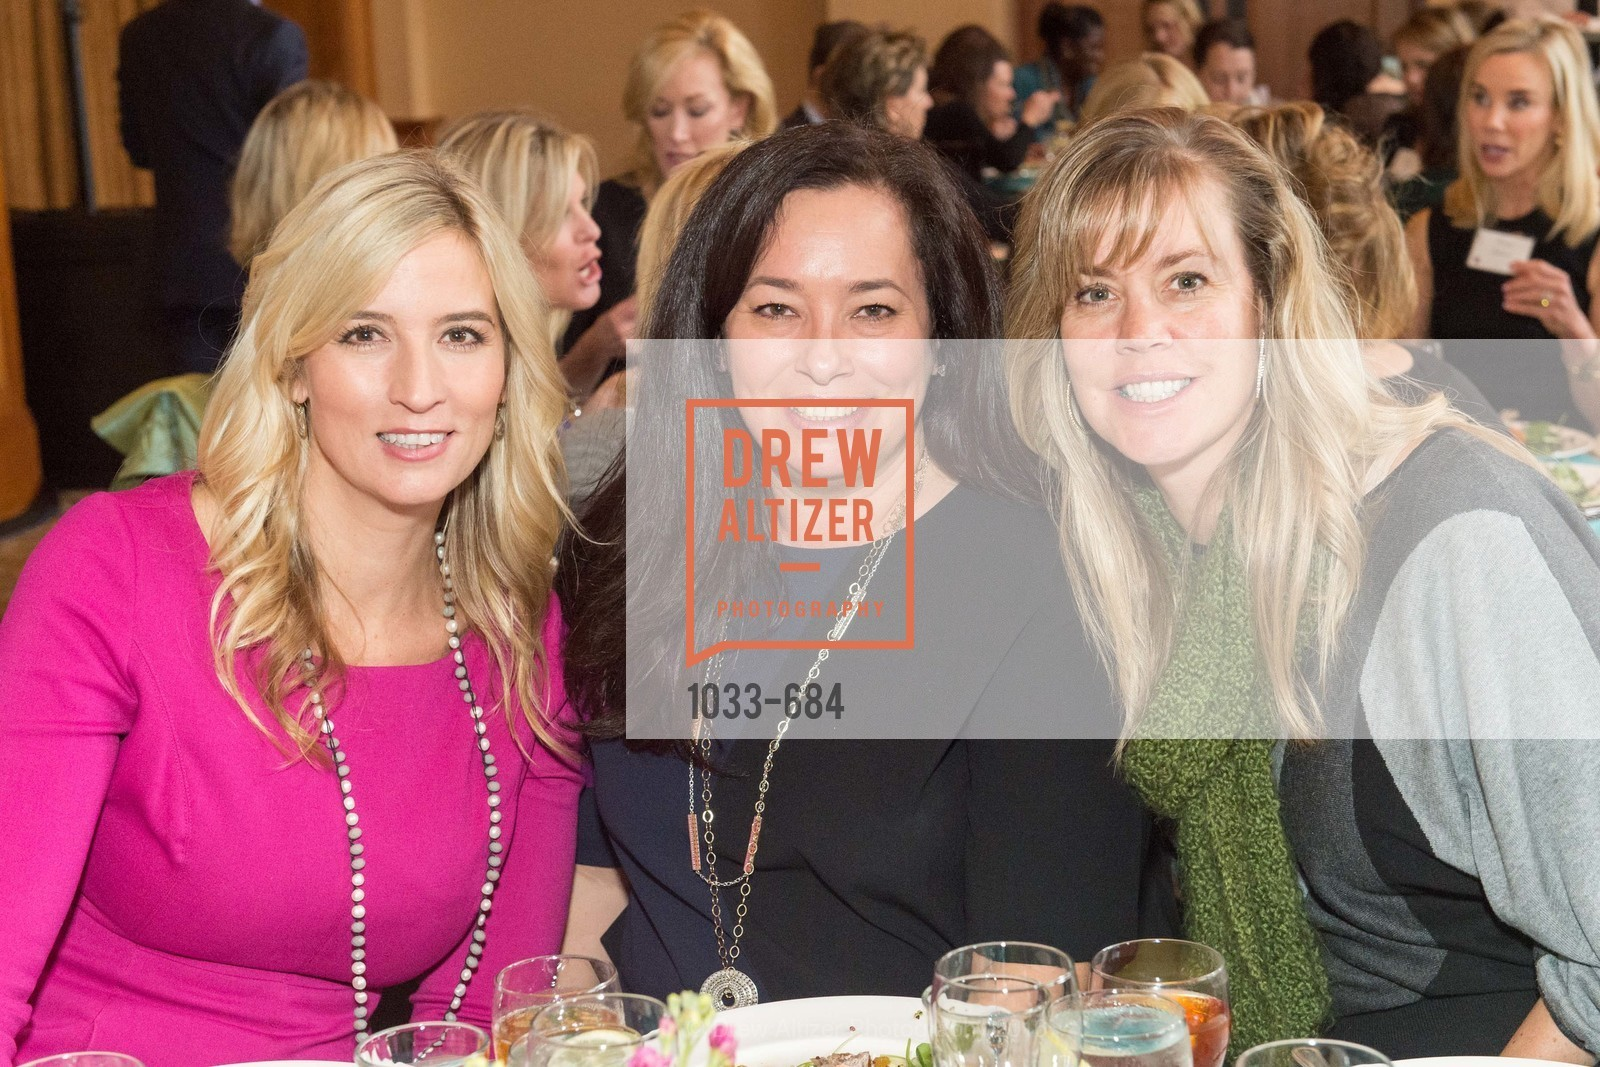 Monika Cheney, Lynn Cullen, Jill Peters, Under One Umbrella, Sharon Heights Golf and Country Club, January 13th, 2016,Drew Altizer, Drew Altizer Photography, full-service agency, private events, San Francisco photographer, photographer california